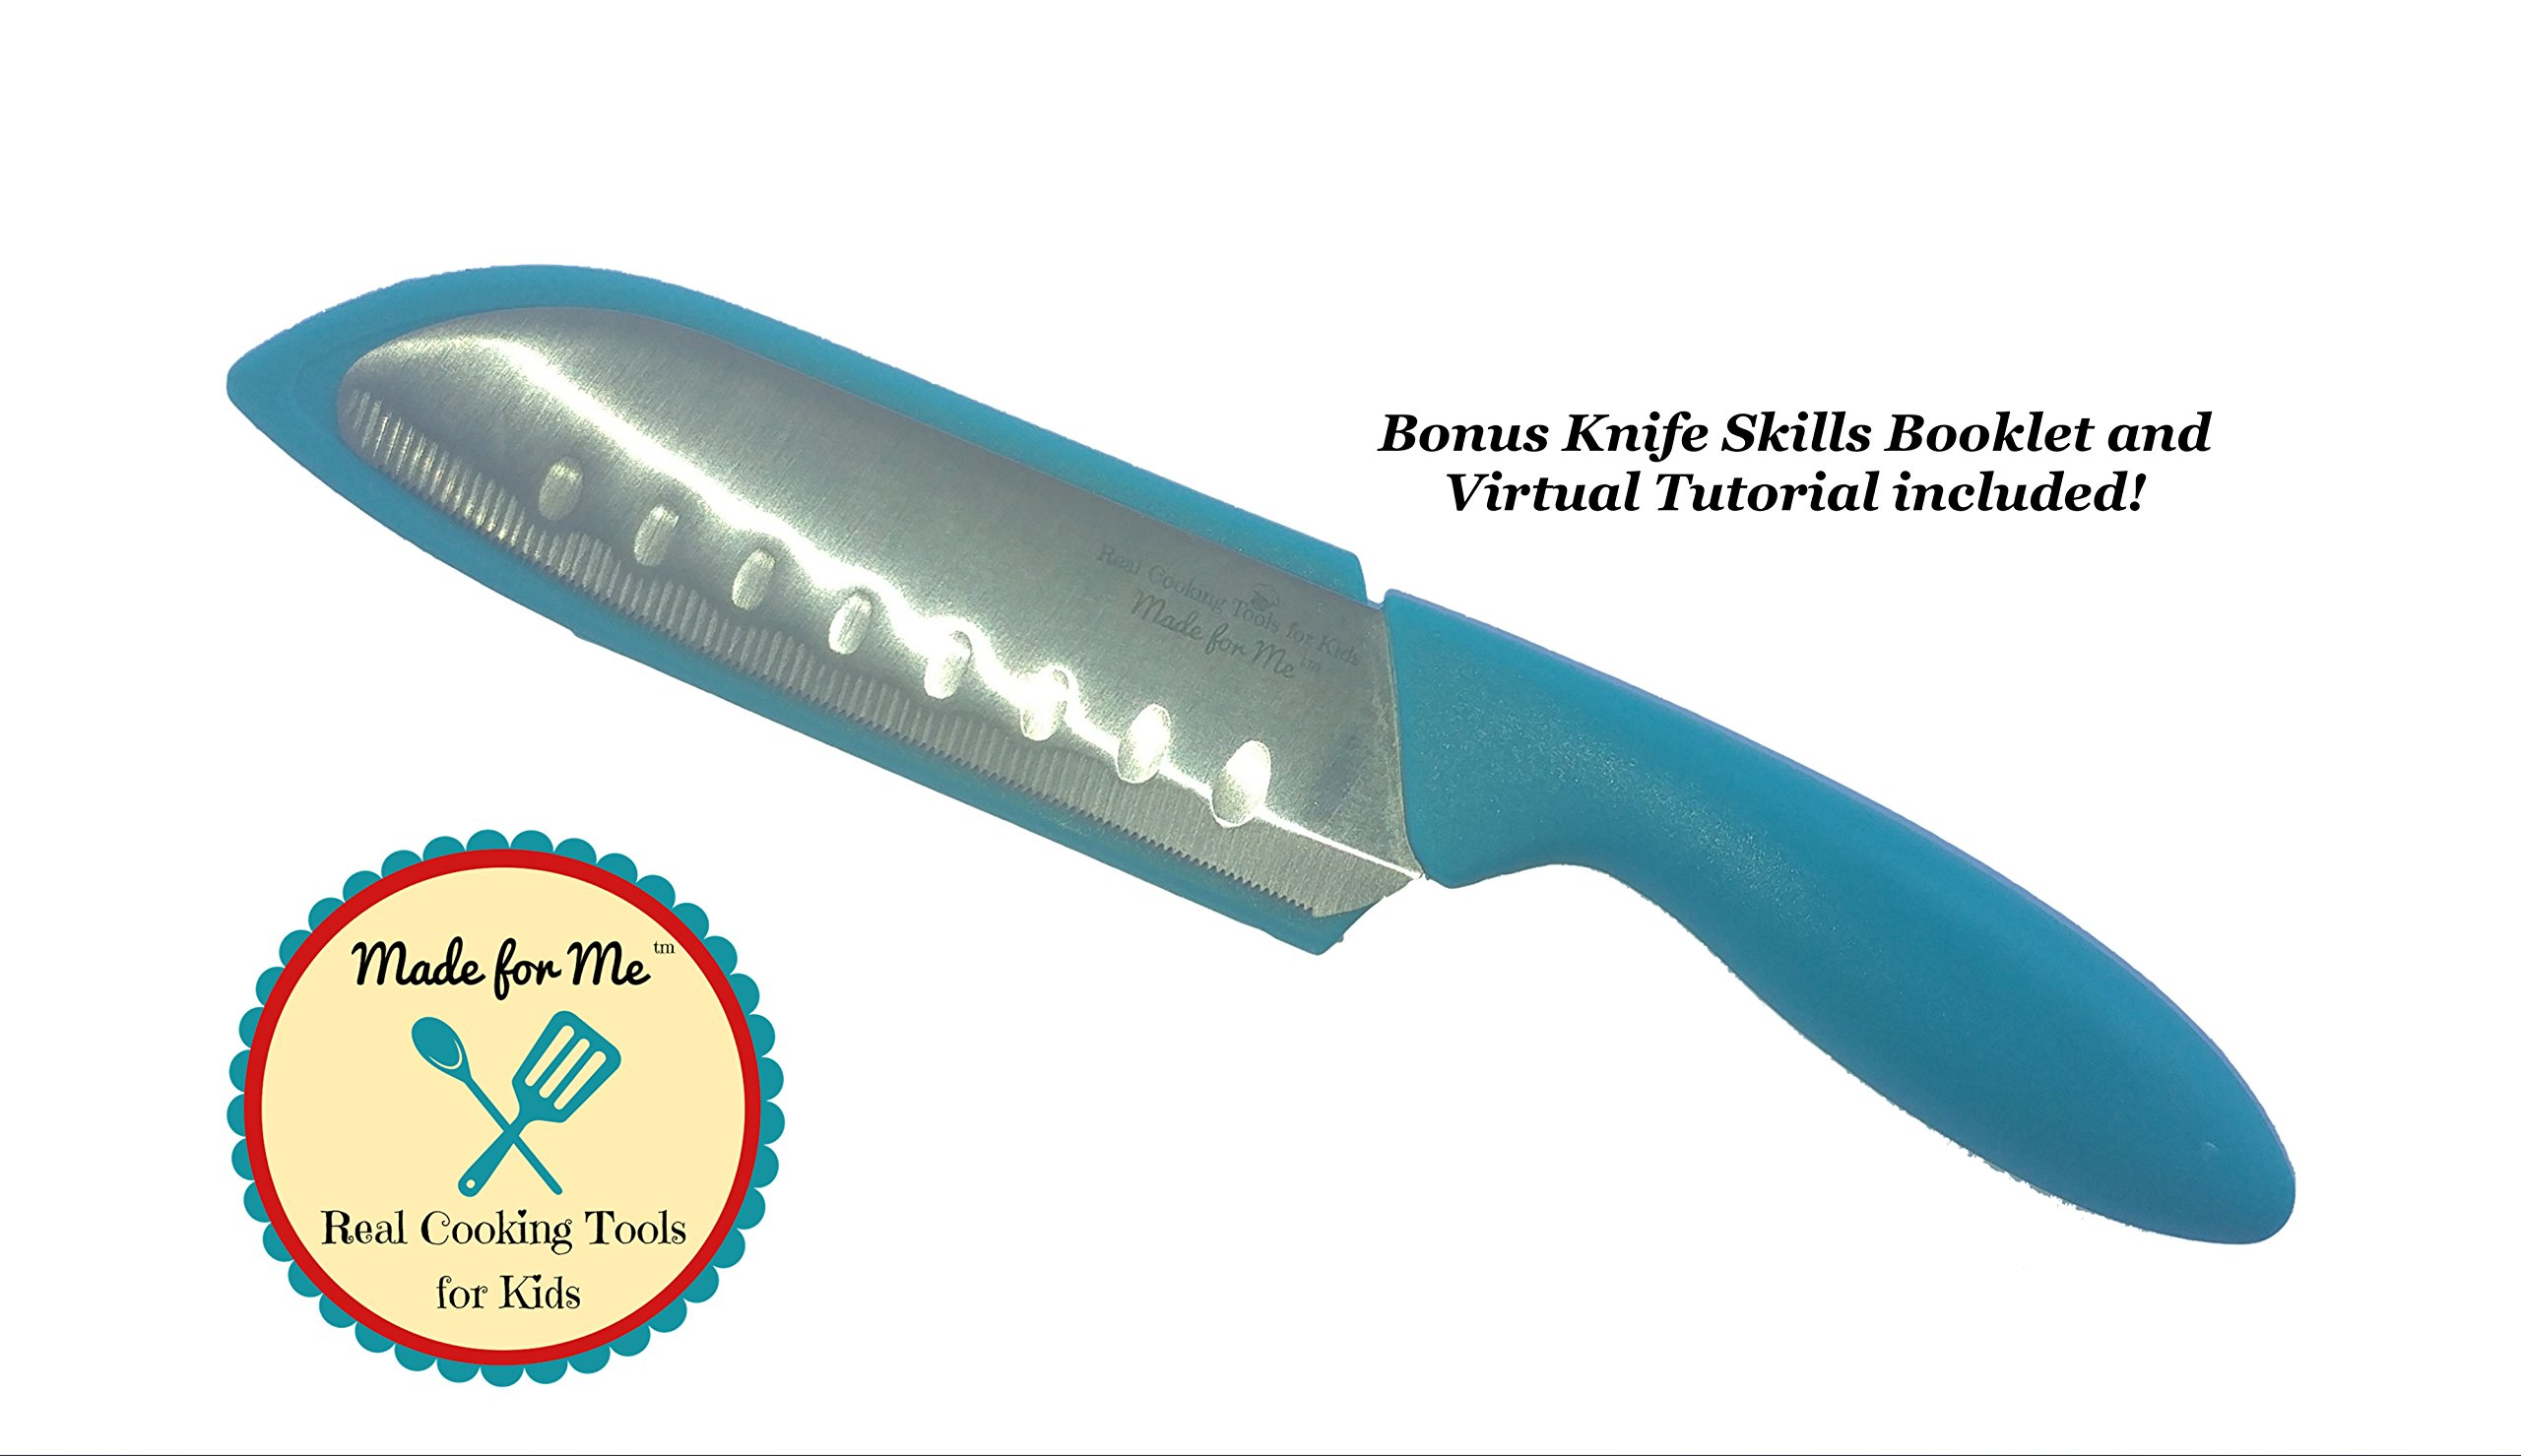 BEGINNER'S CHEF KNIFE - Kids Favorite and Parents #1 choice for safety and design! - Bonus Knife Skills Booklet and Virtual Tutorial included!